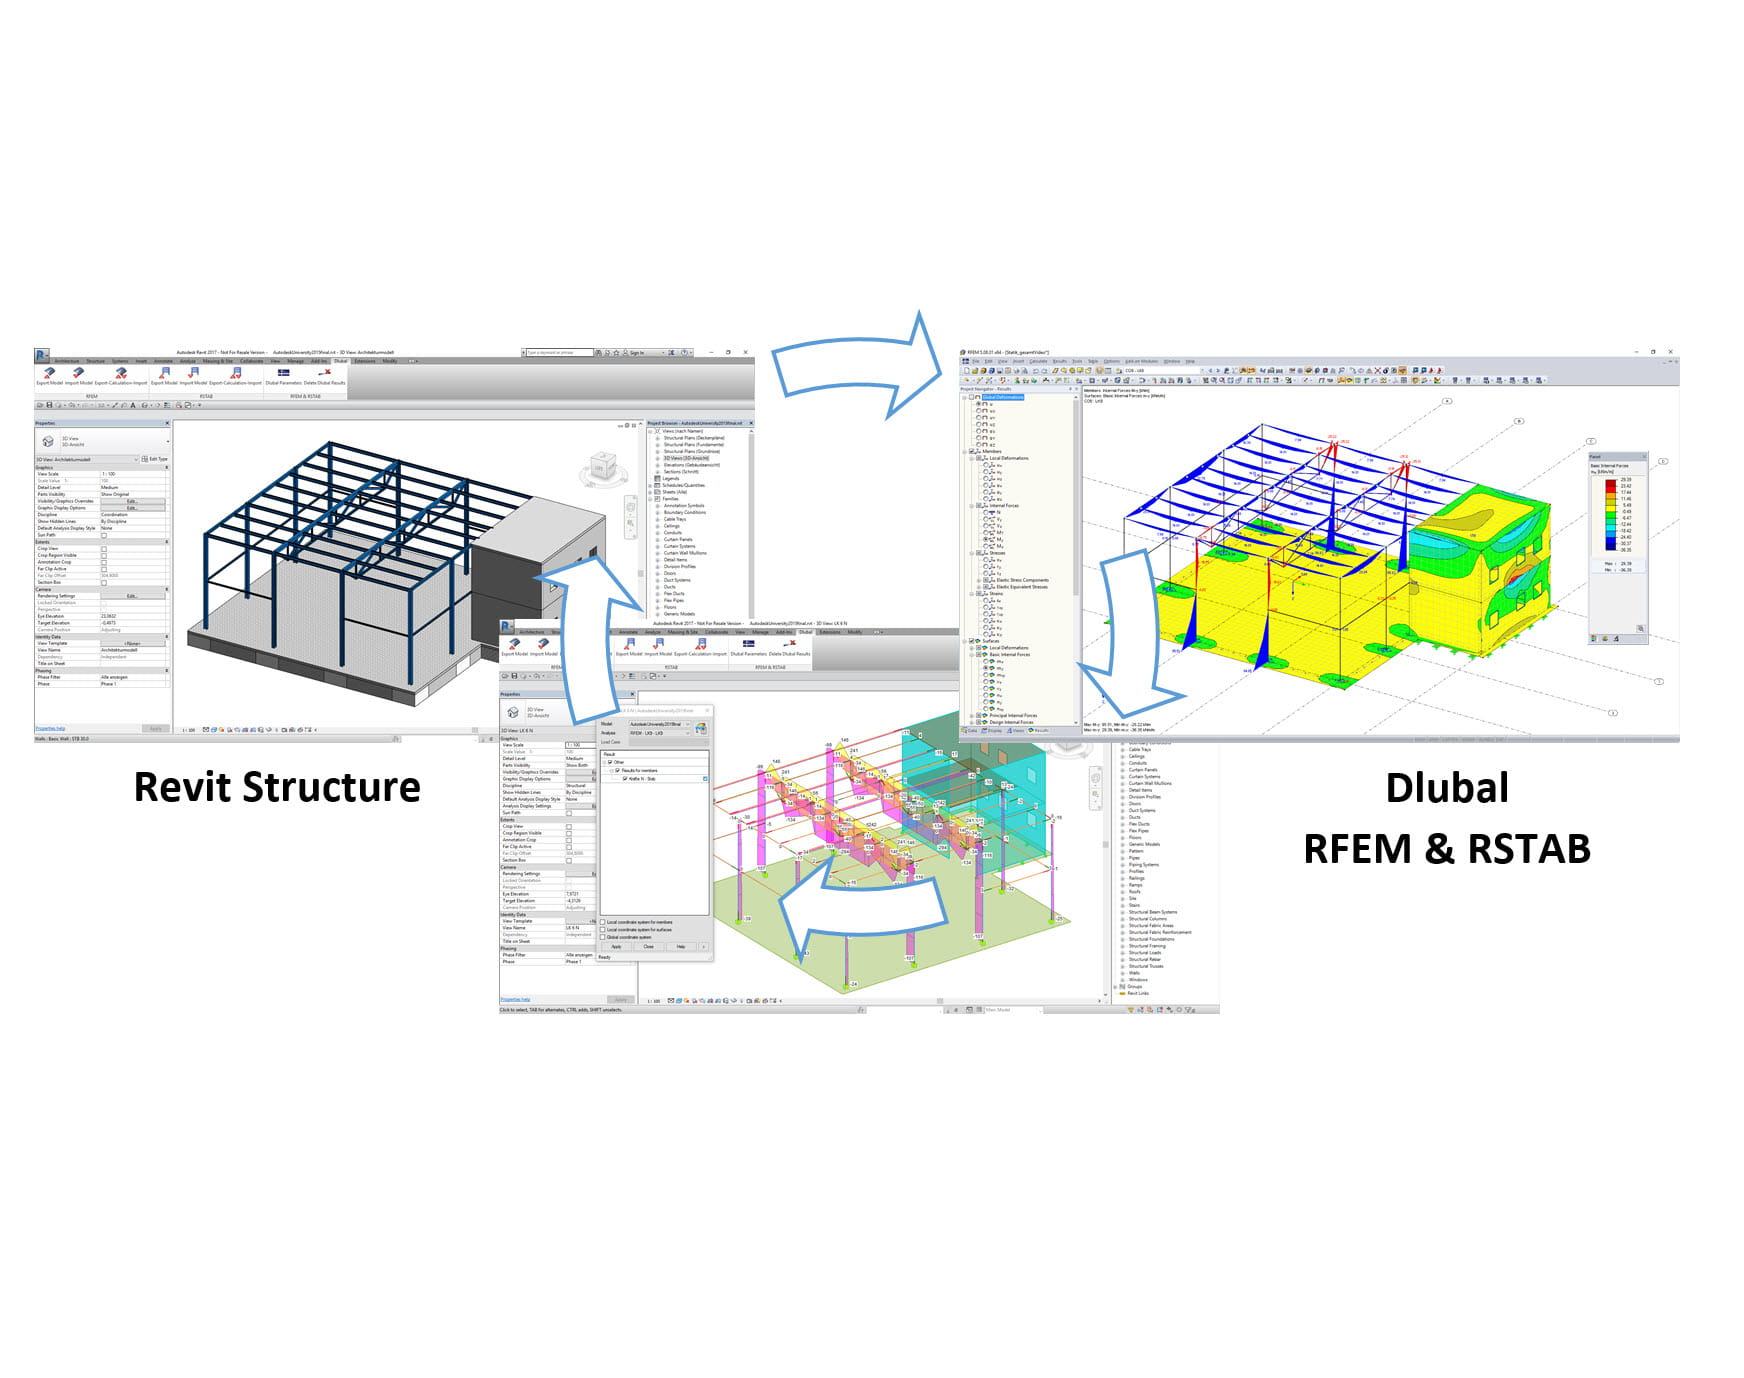 BIM scenario with Revit and RFEM/RSTAB